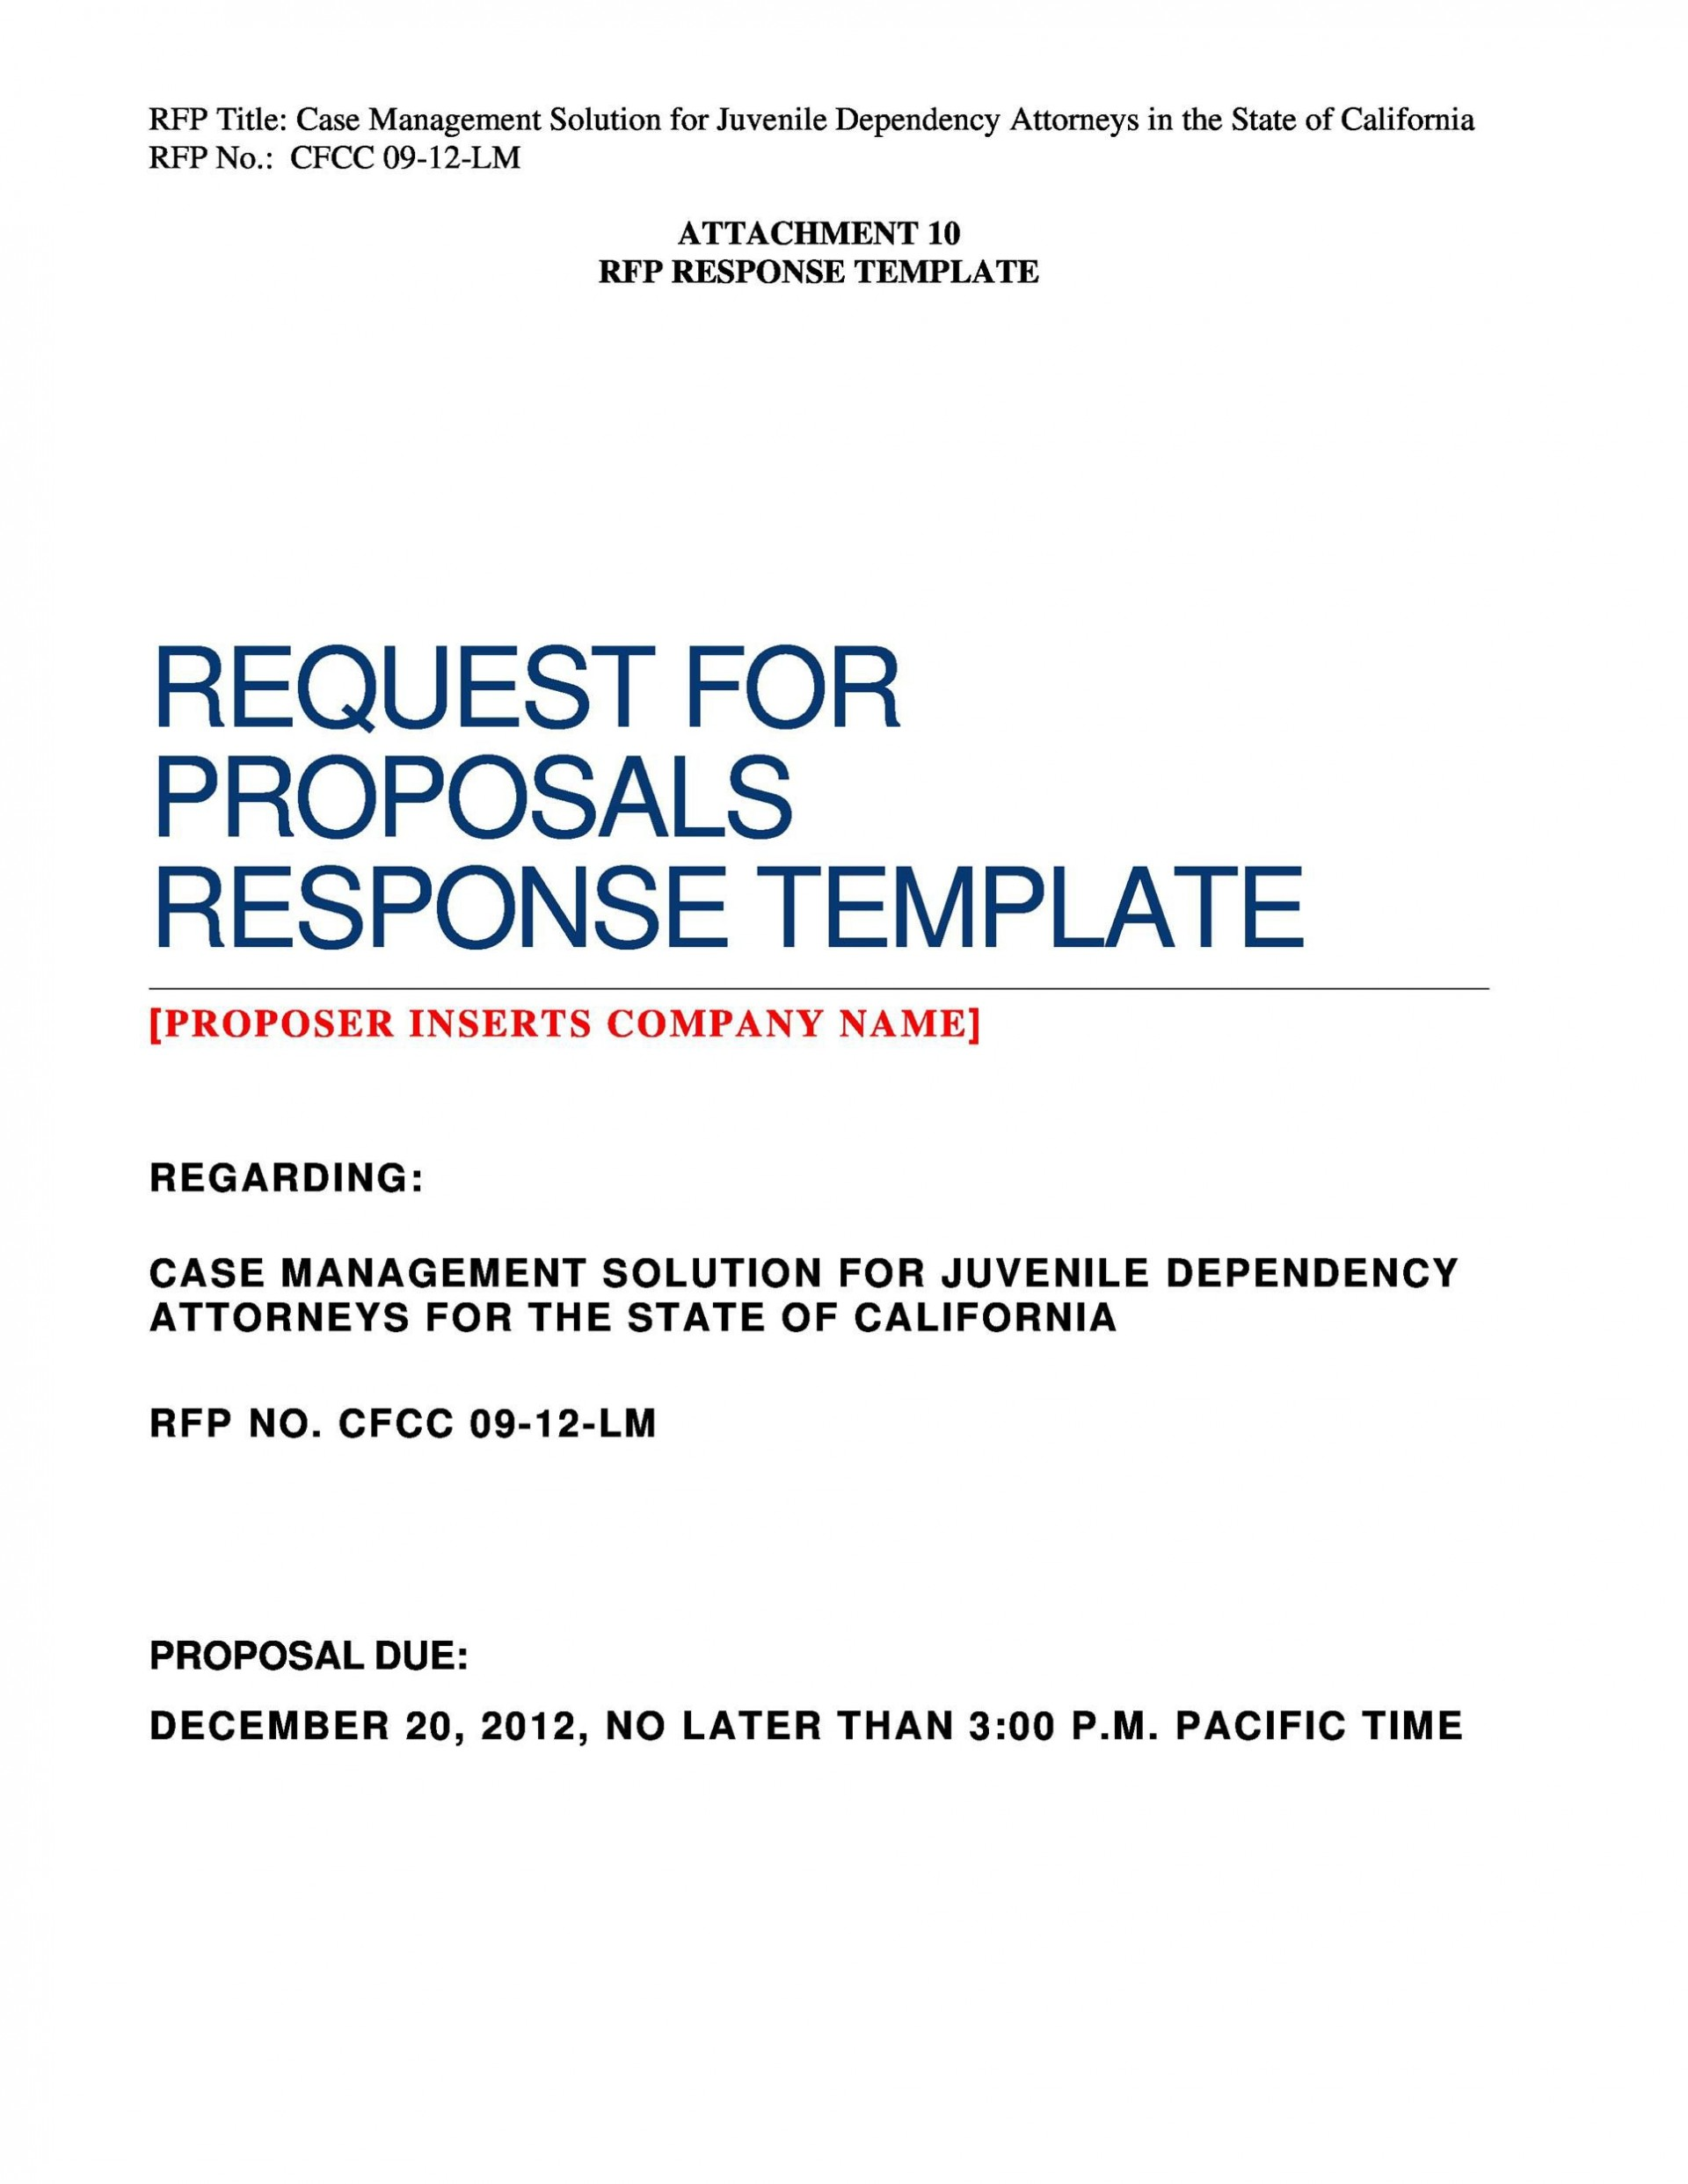 005 Staggering Request For Proposal Template Word Free Example 1920